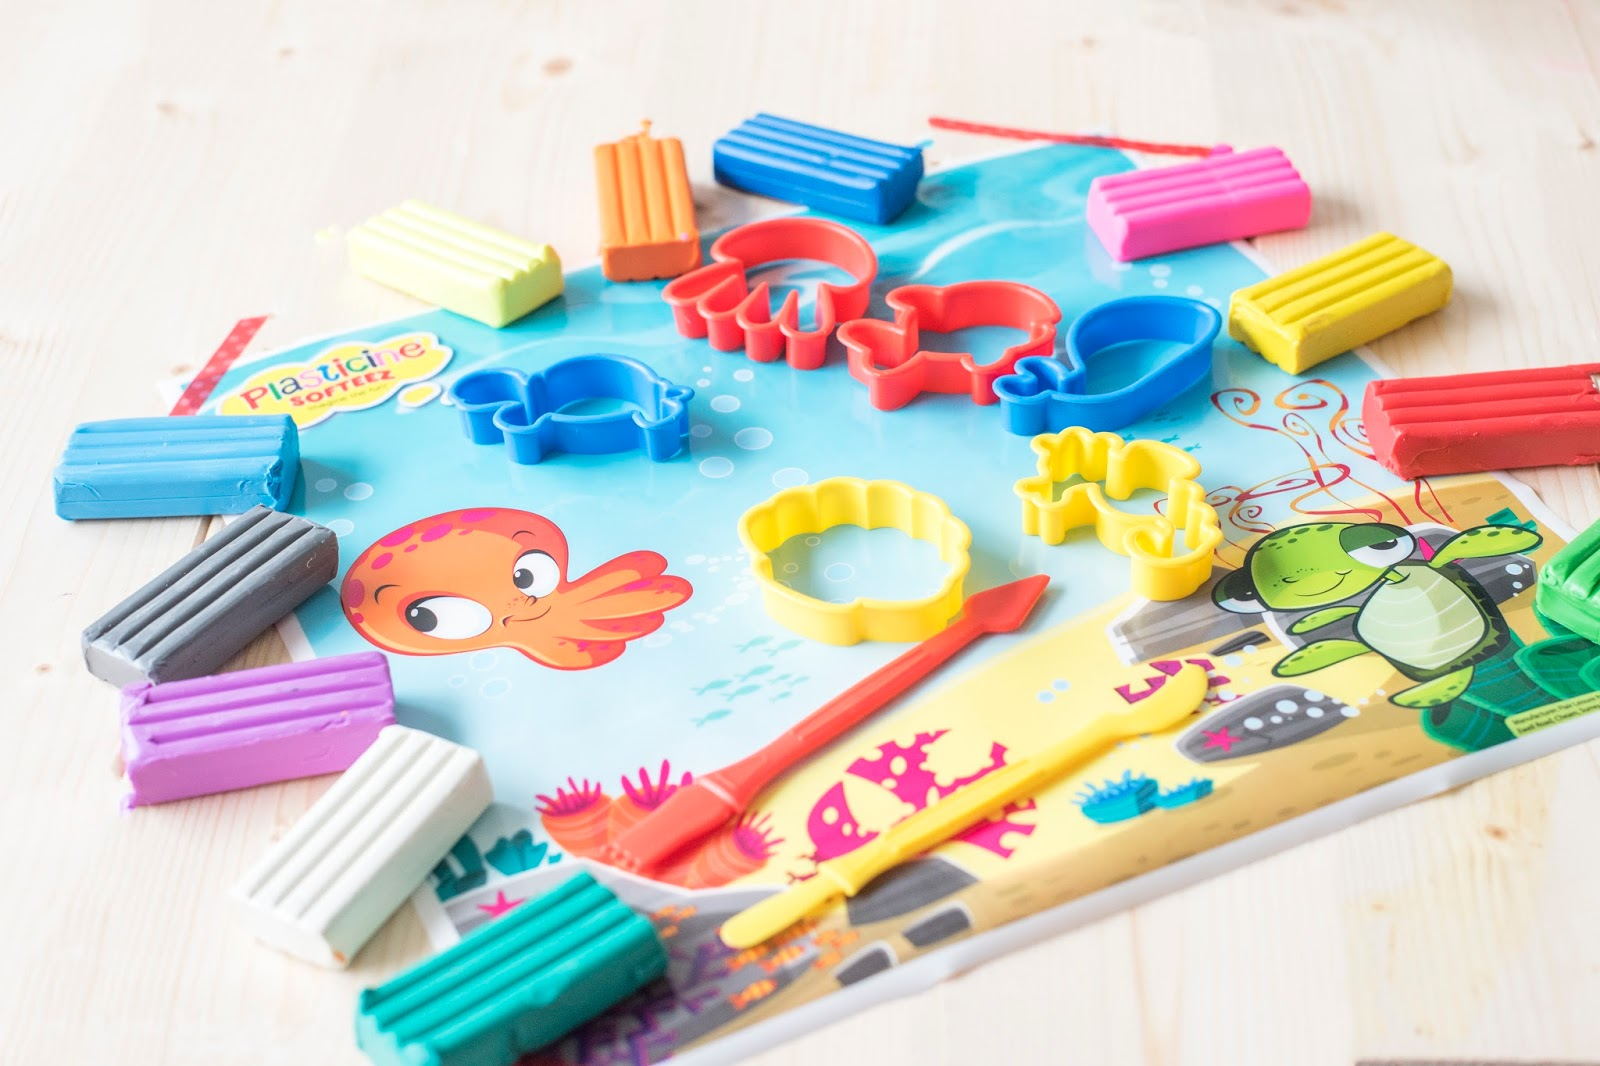 PLASTICINE SOFTEEZ: PUT THE KETTLE ON, AND YOUR FEET UP